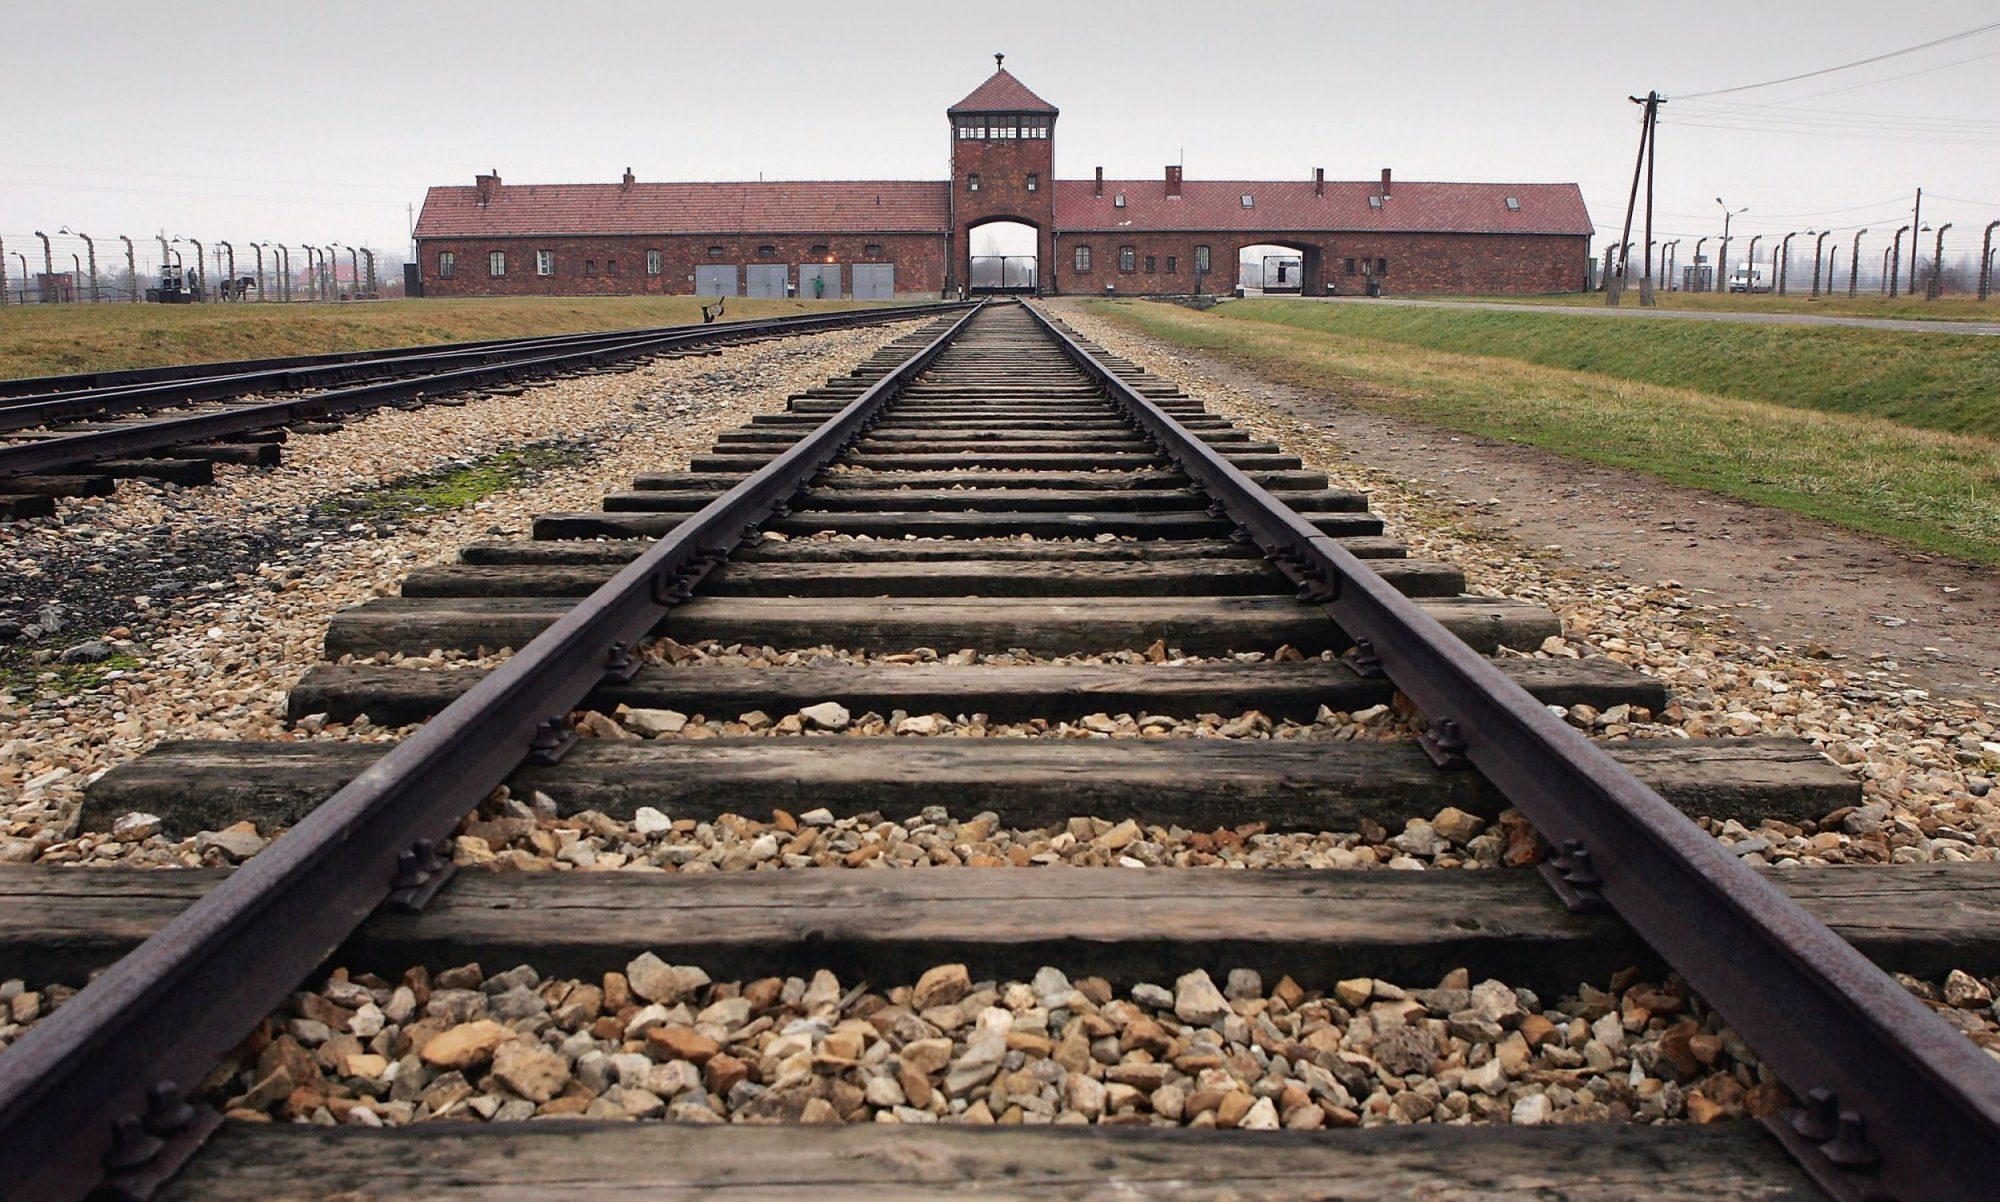 MEND: Holocaust Memorial Day statement